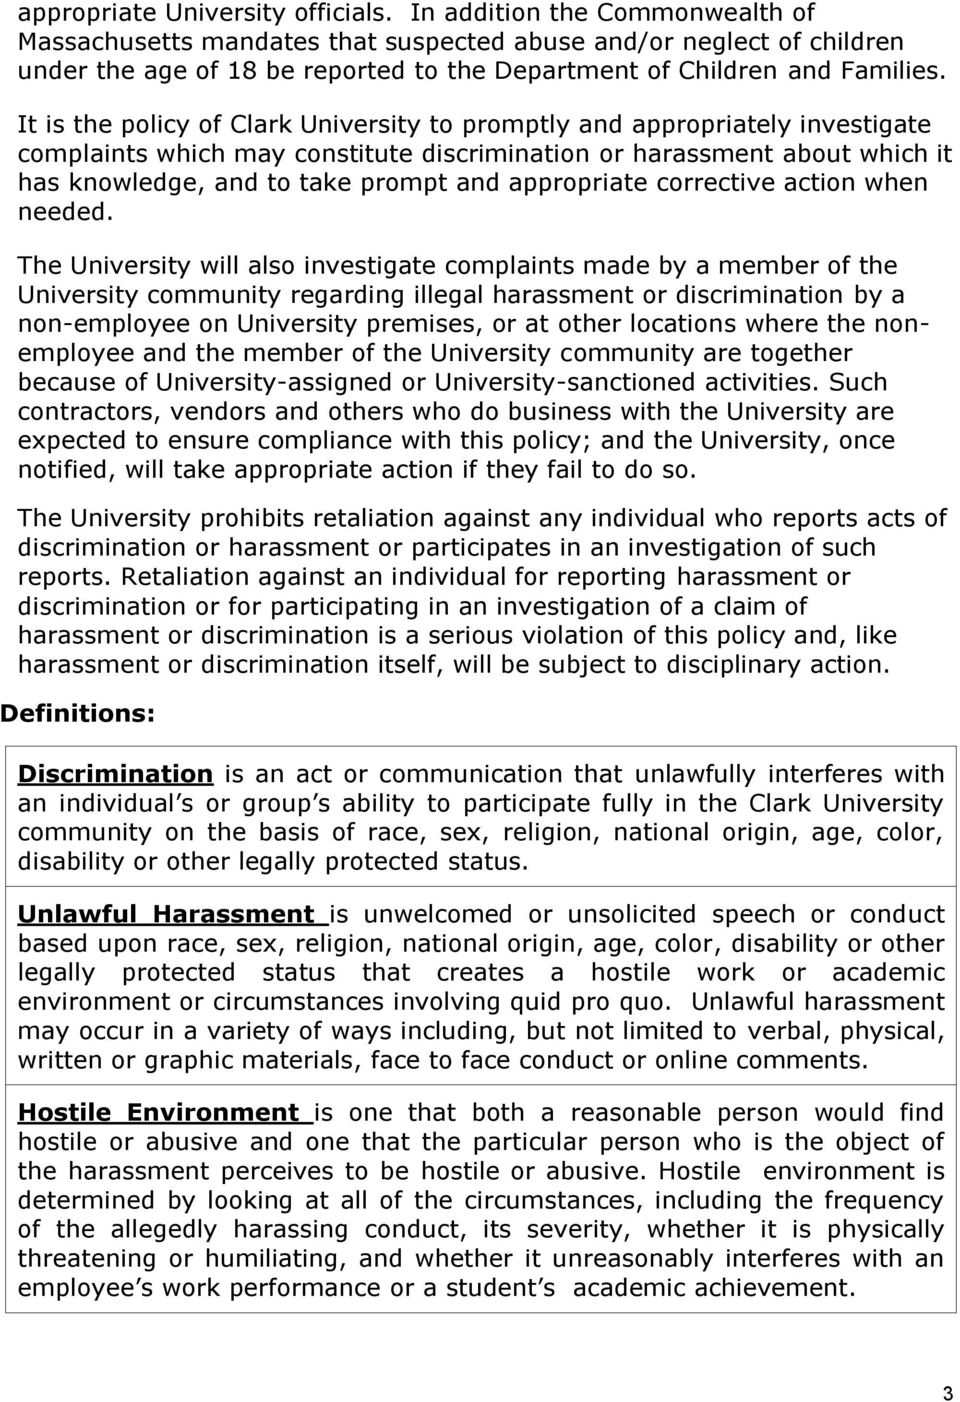 It is the policy of Clark University to promptly and appropriately investigate complaints which may constitute discrimination or harassment about which it has knowledge, and to take prompt and